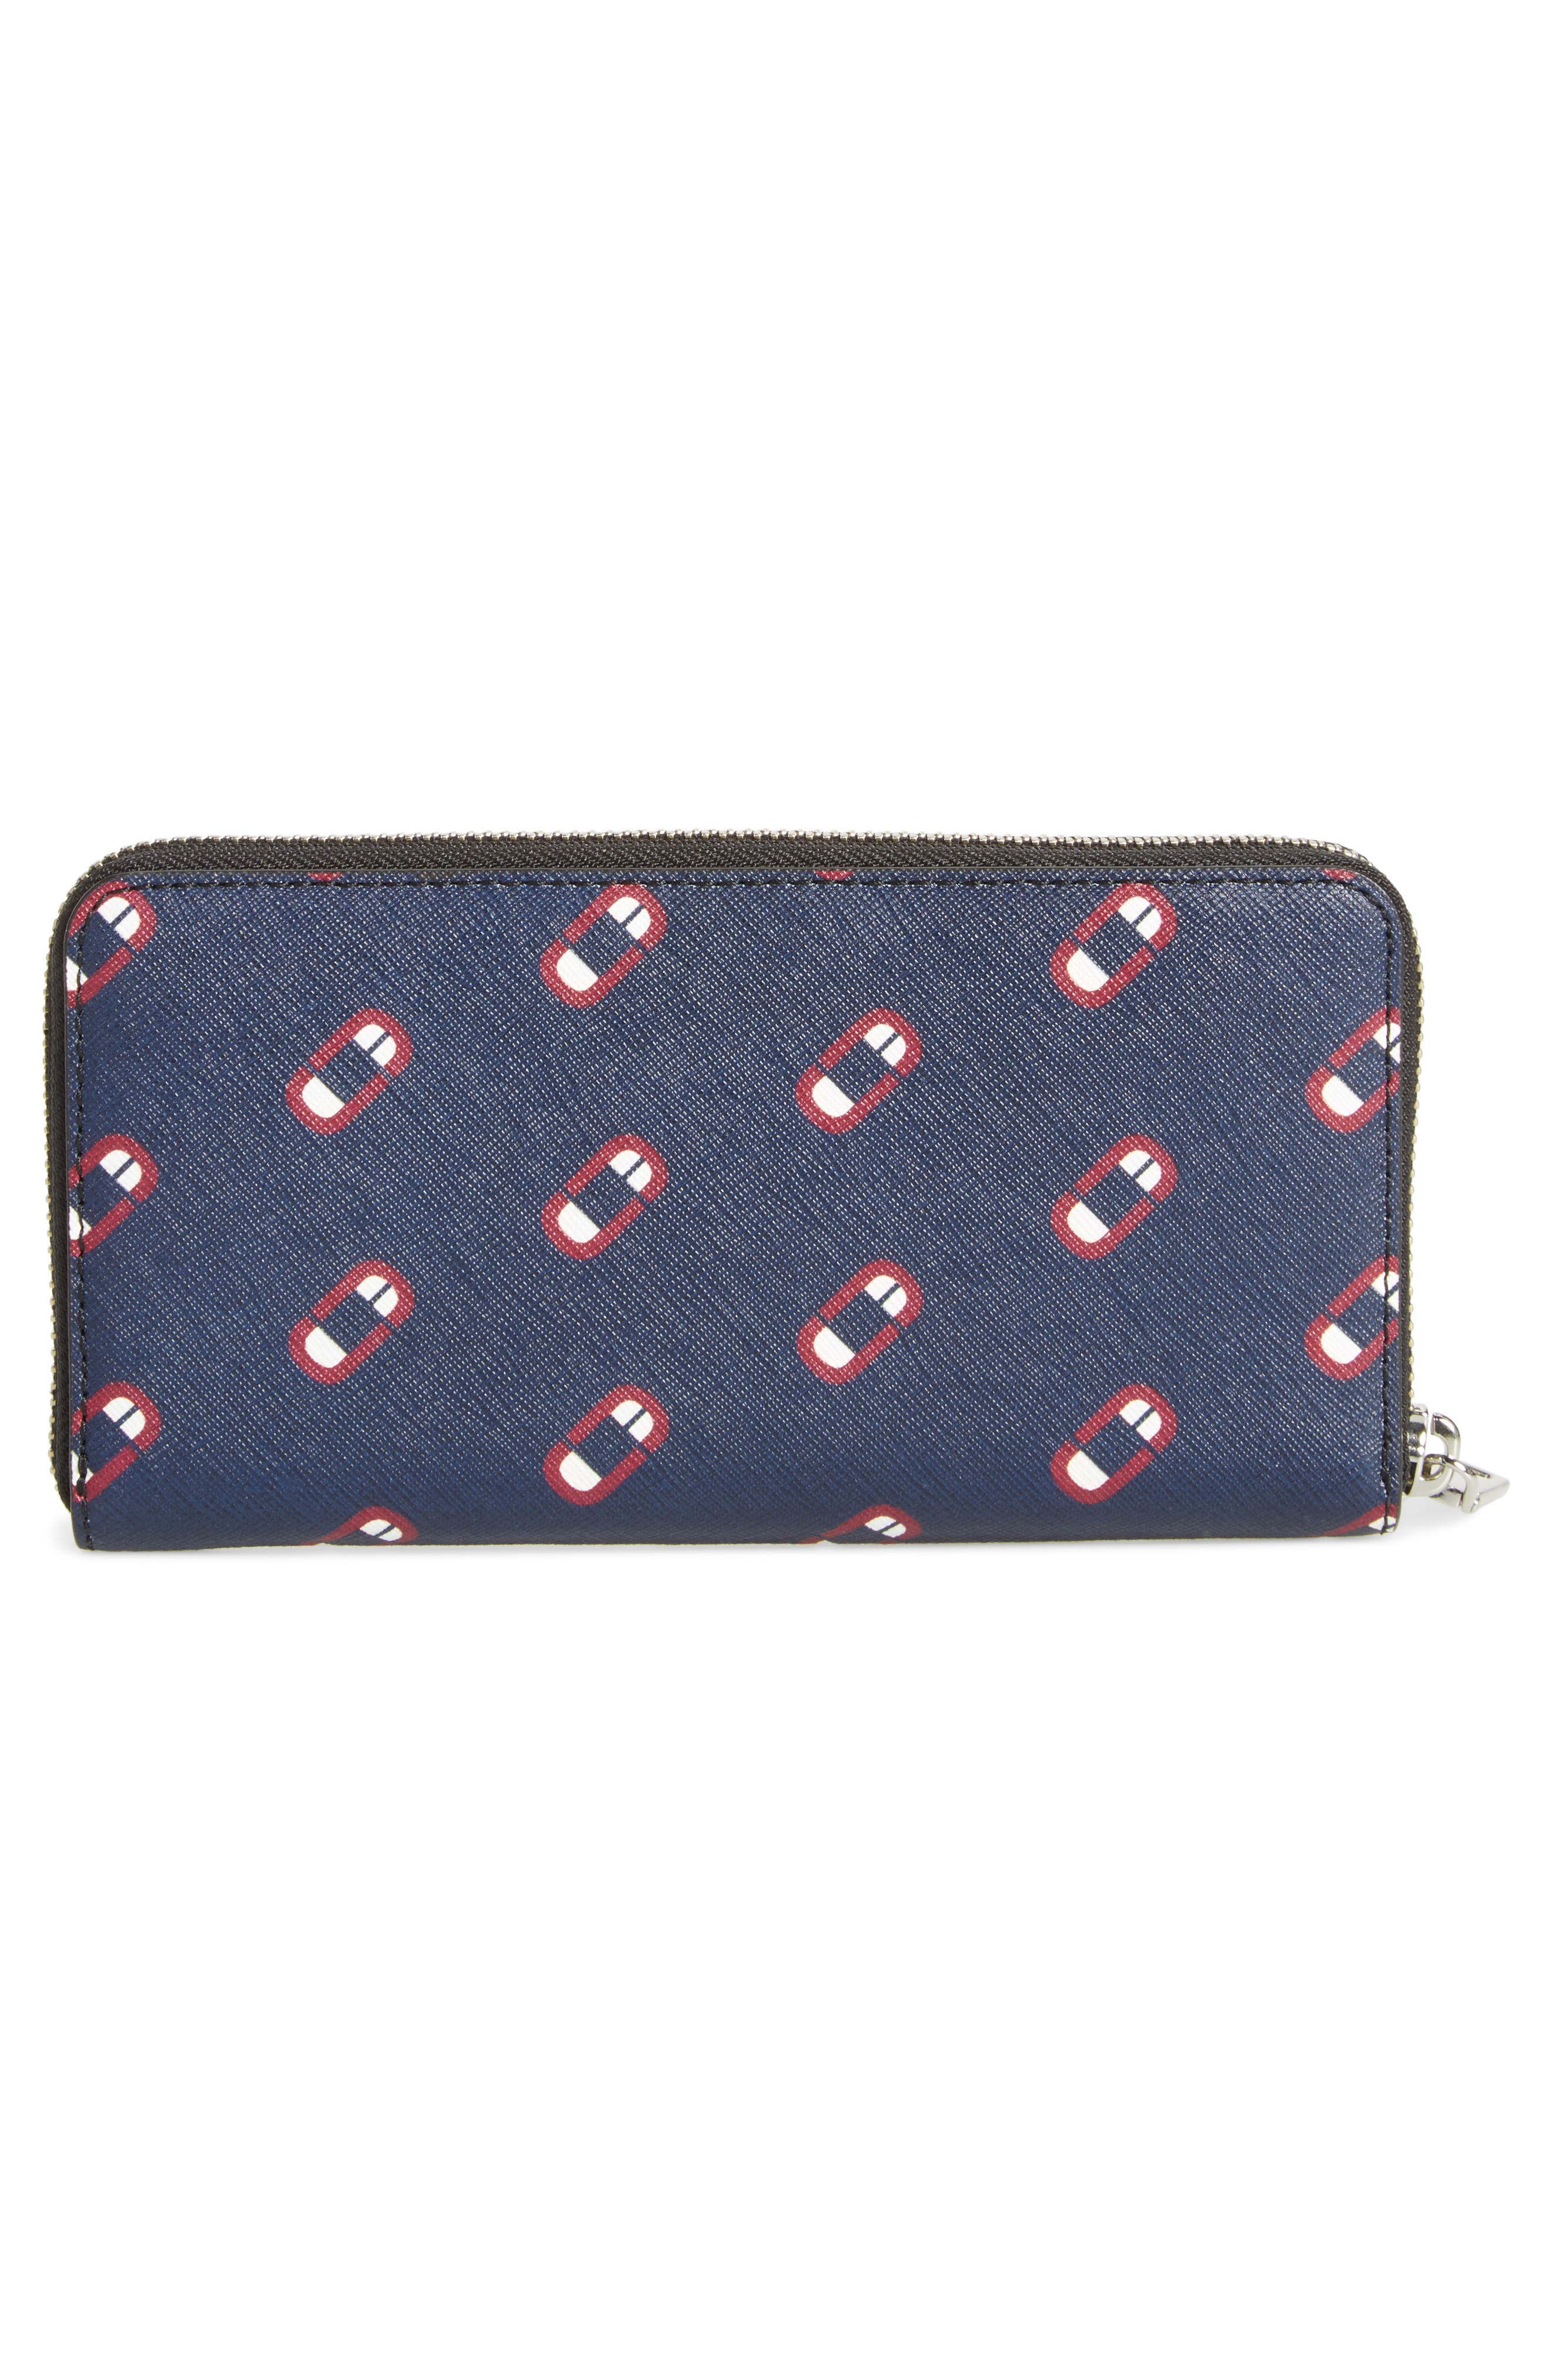 Scream Saffiano Leather Continental Wallet,                             Alternate thumbnail 3, color,